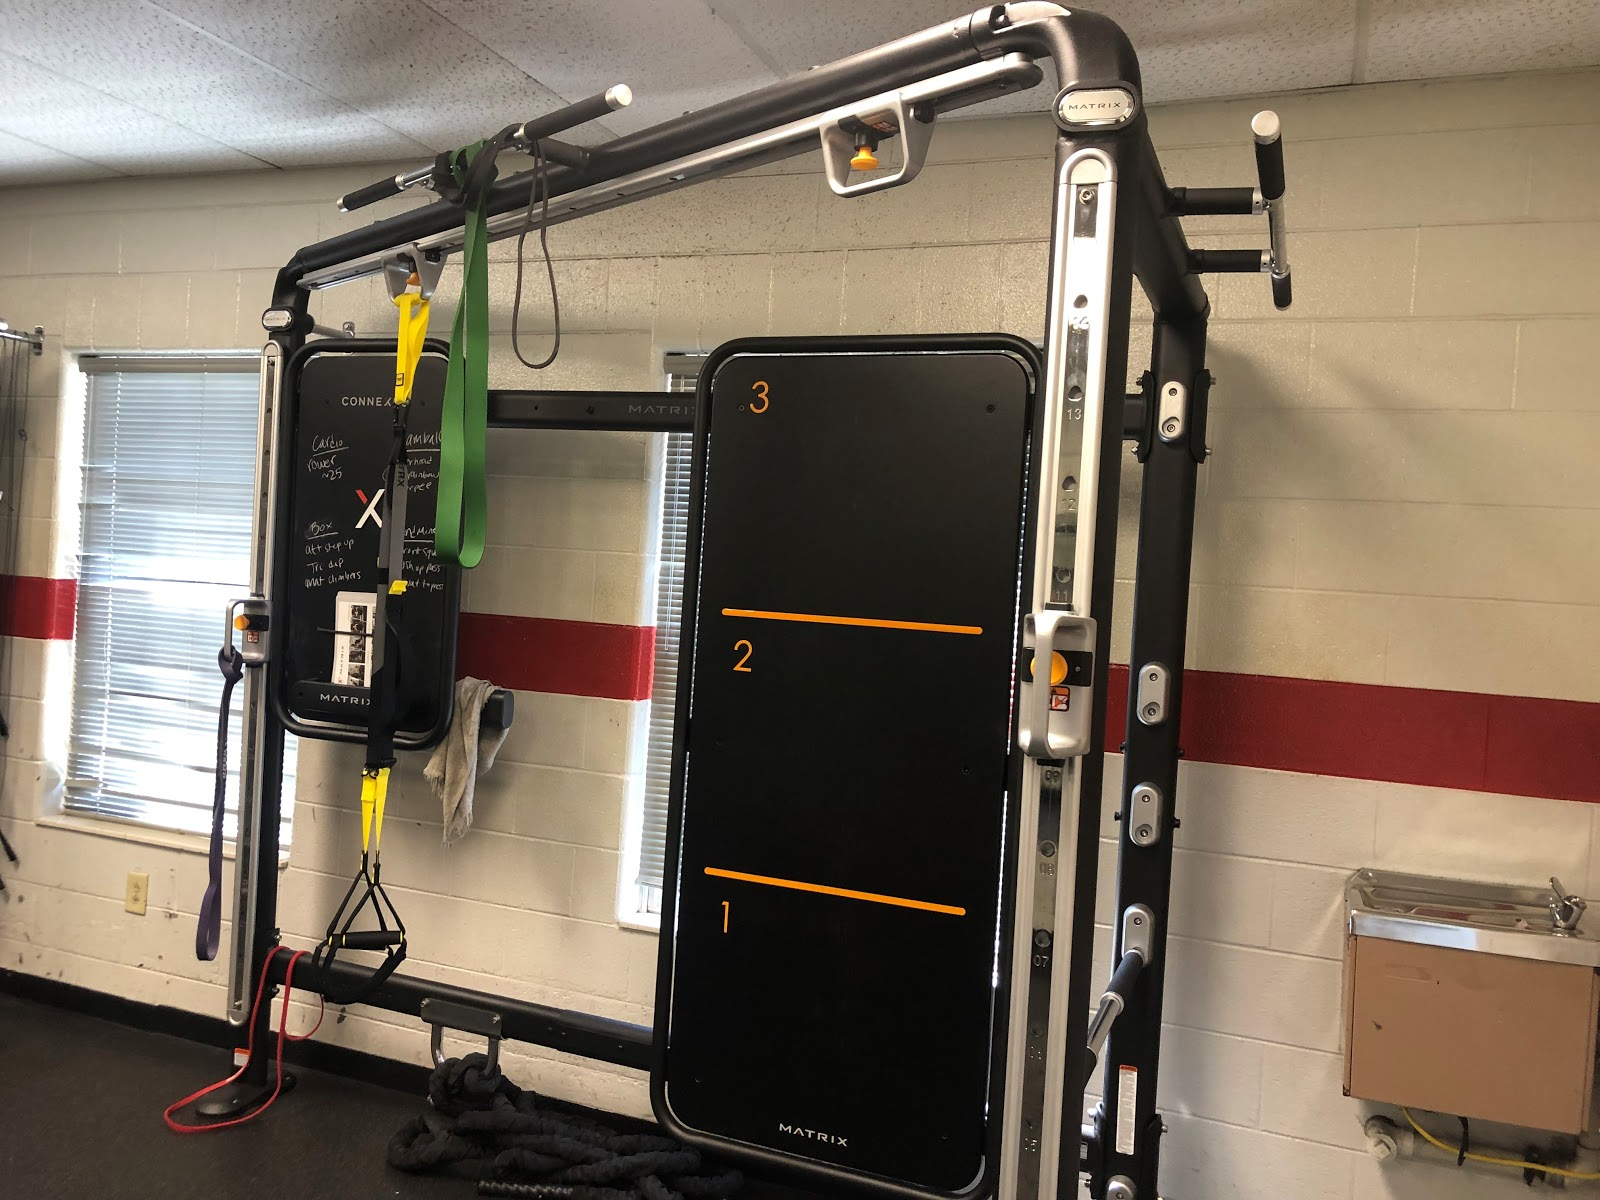 New equipment for the new MX4 personal training program was set up earlier this semester. Photo by Amy Harrison.